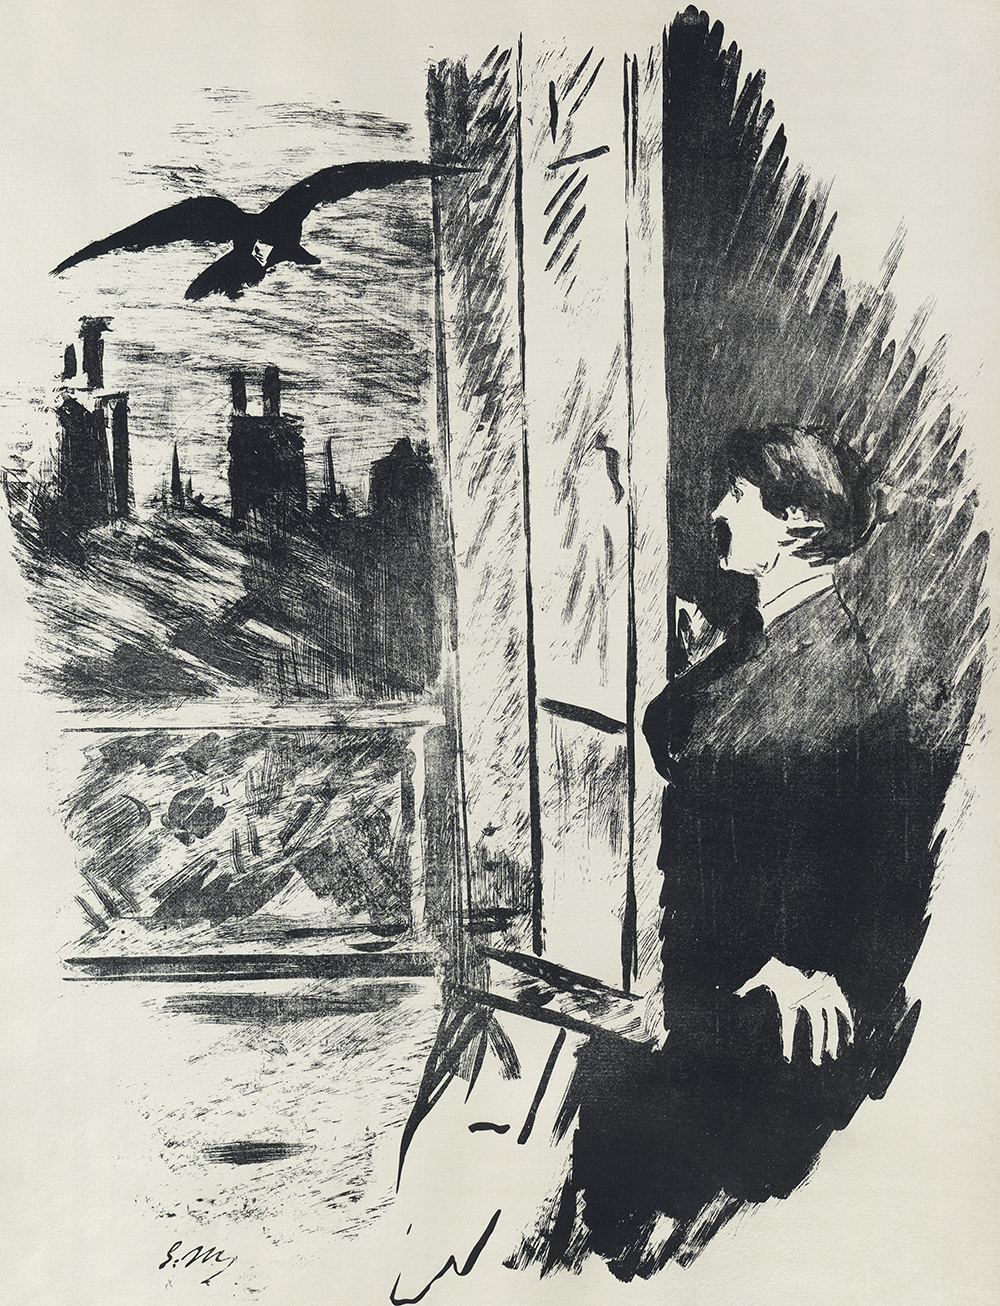 """Illustration for a French translation by Stéphane Mallarmé of Edgar Allan Poe's """"The Raven,"""" by Édouard Manet, 1875. Wikimedia Commons, Library of Congress."""